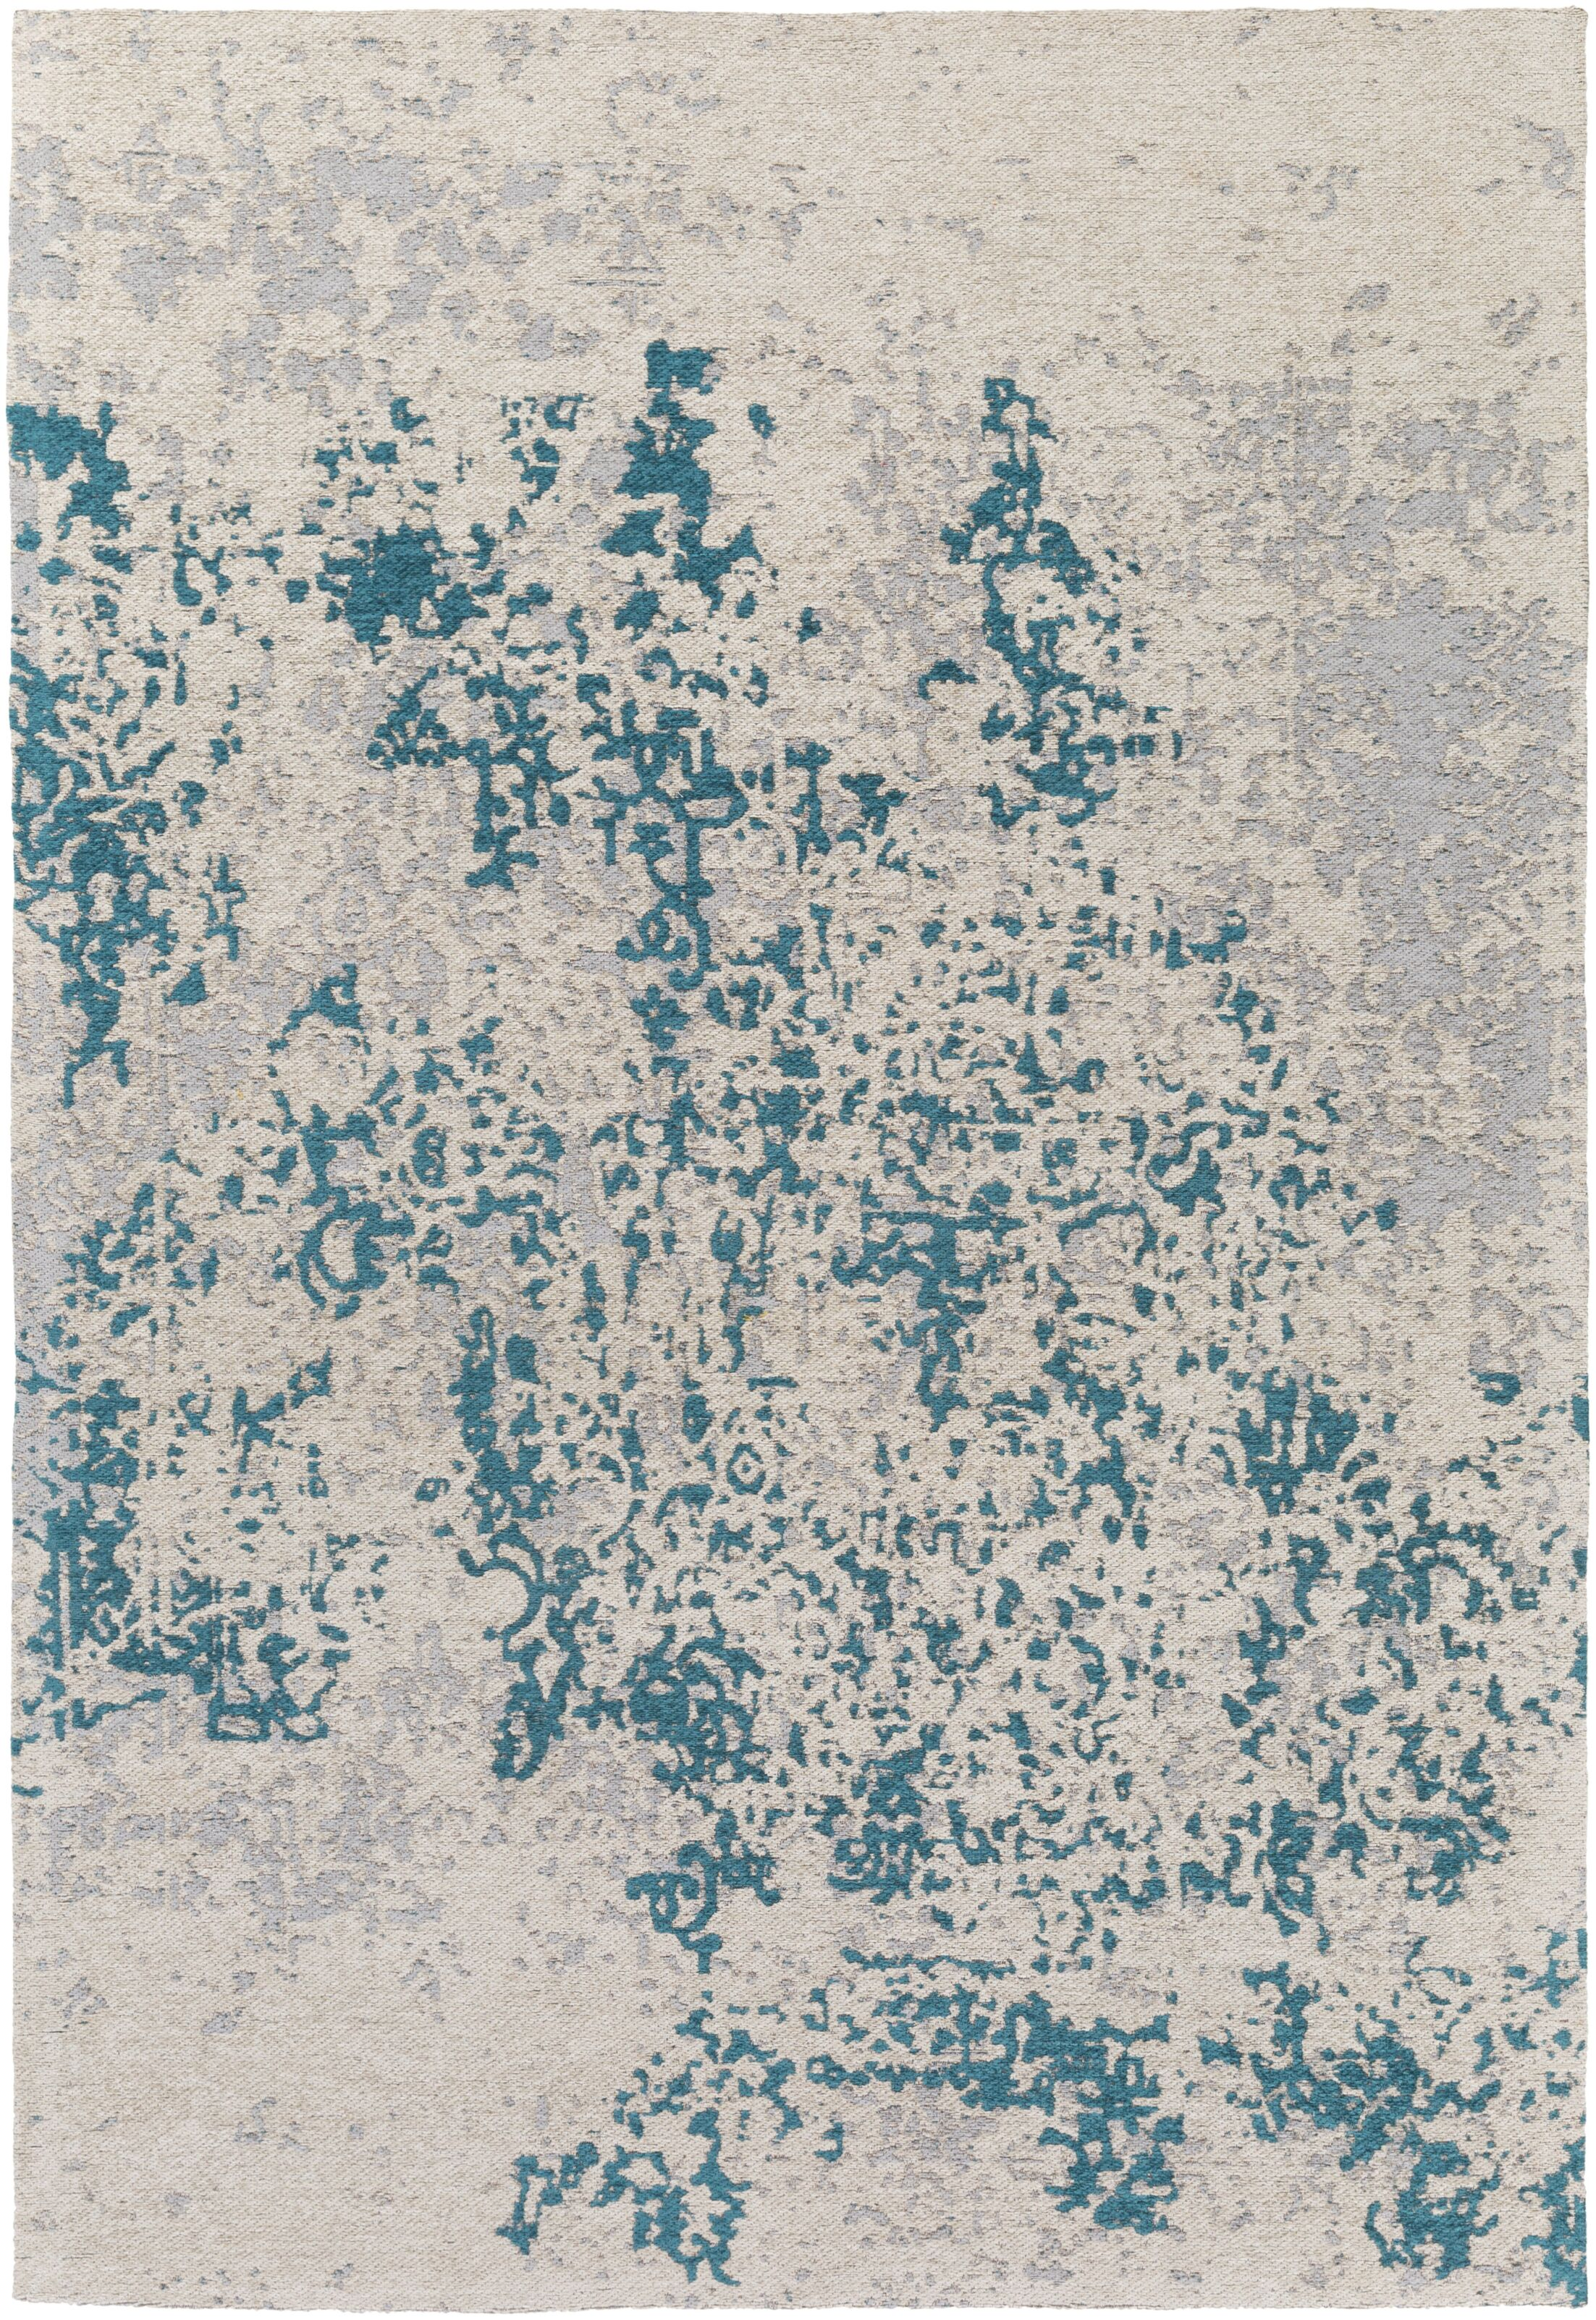 Detrick Handmade Teal Blue/Silver Area Rug Rug Size: Rectangle 9' x 13'